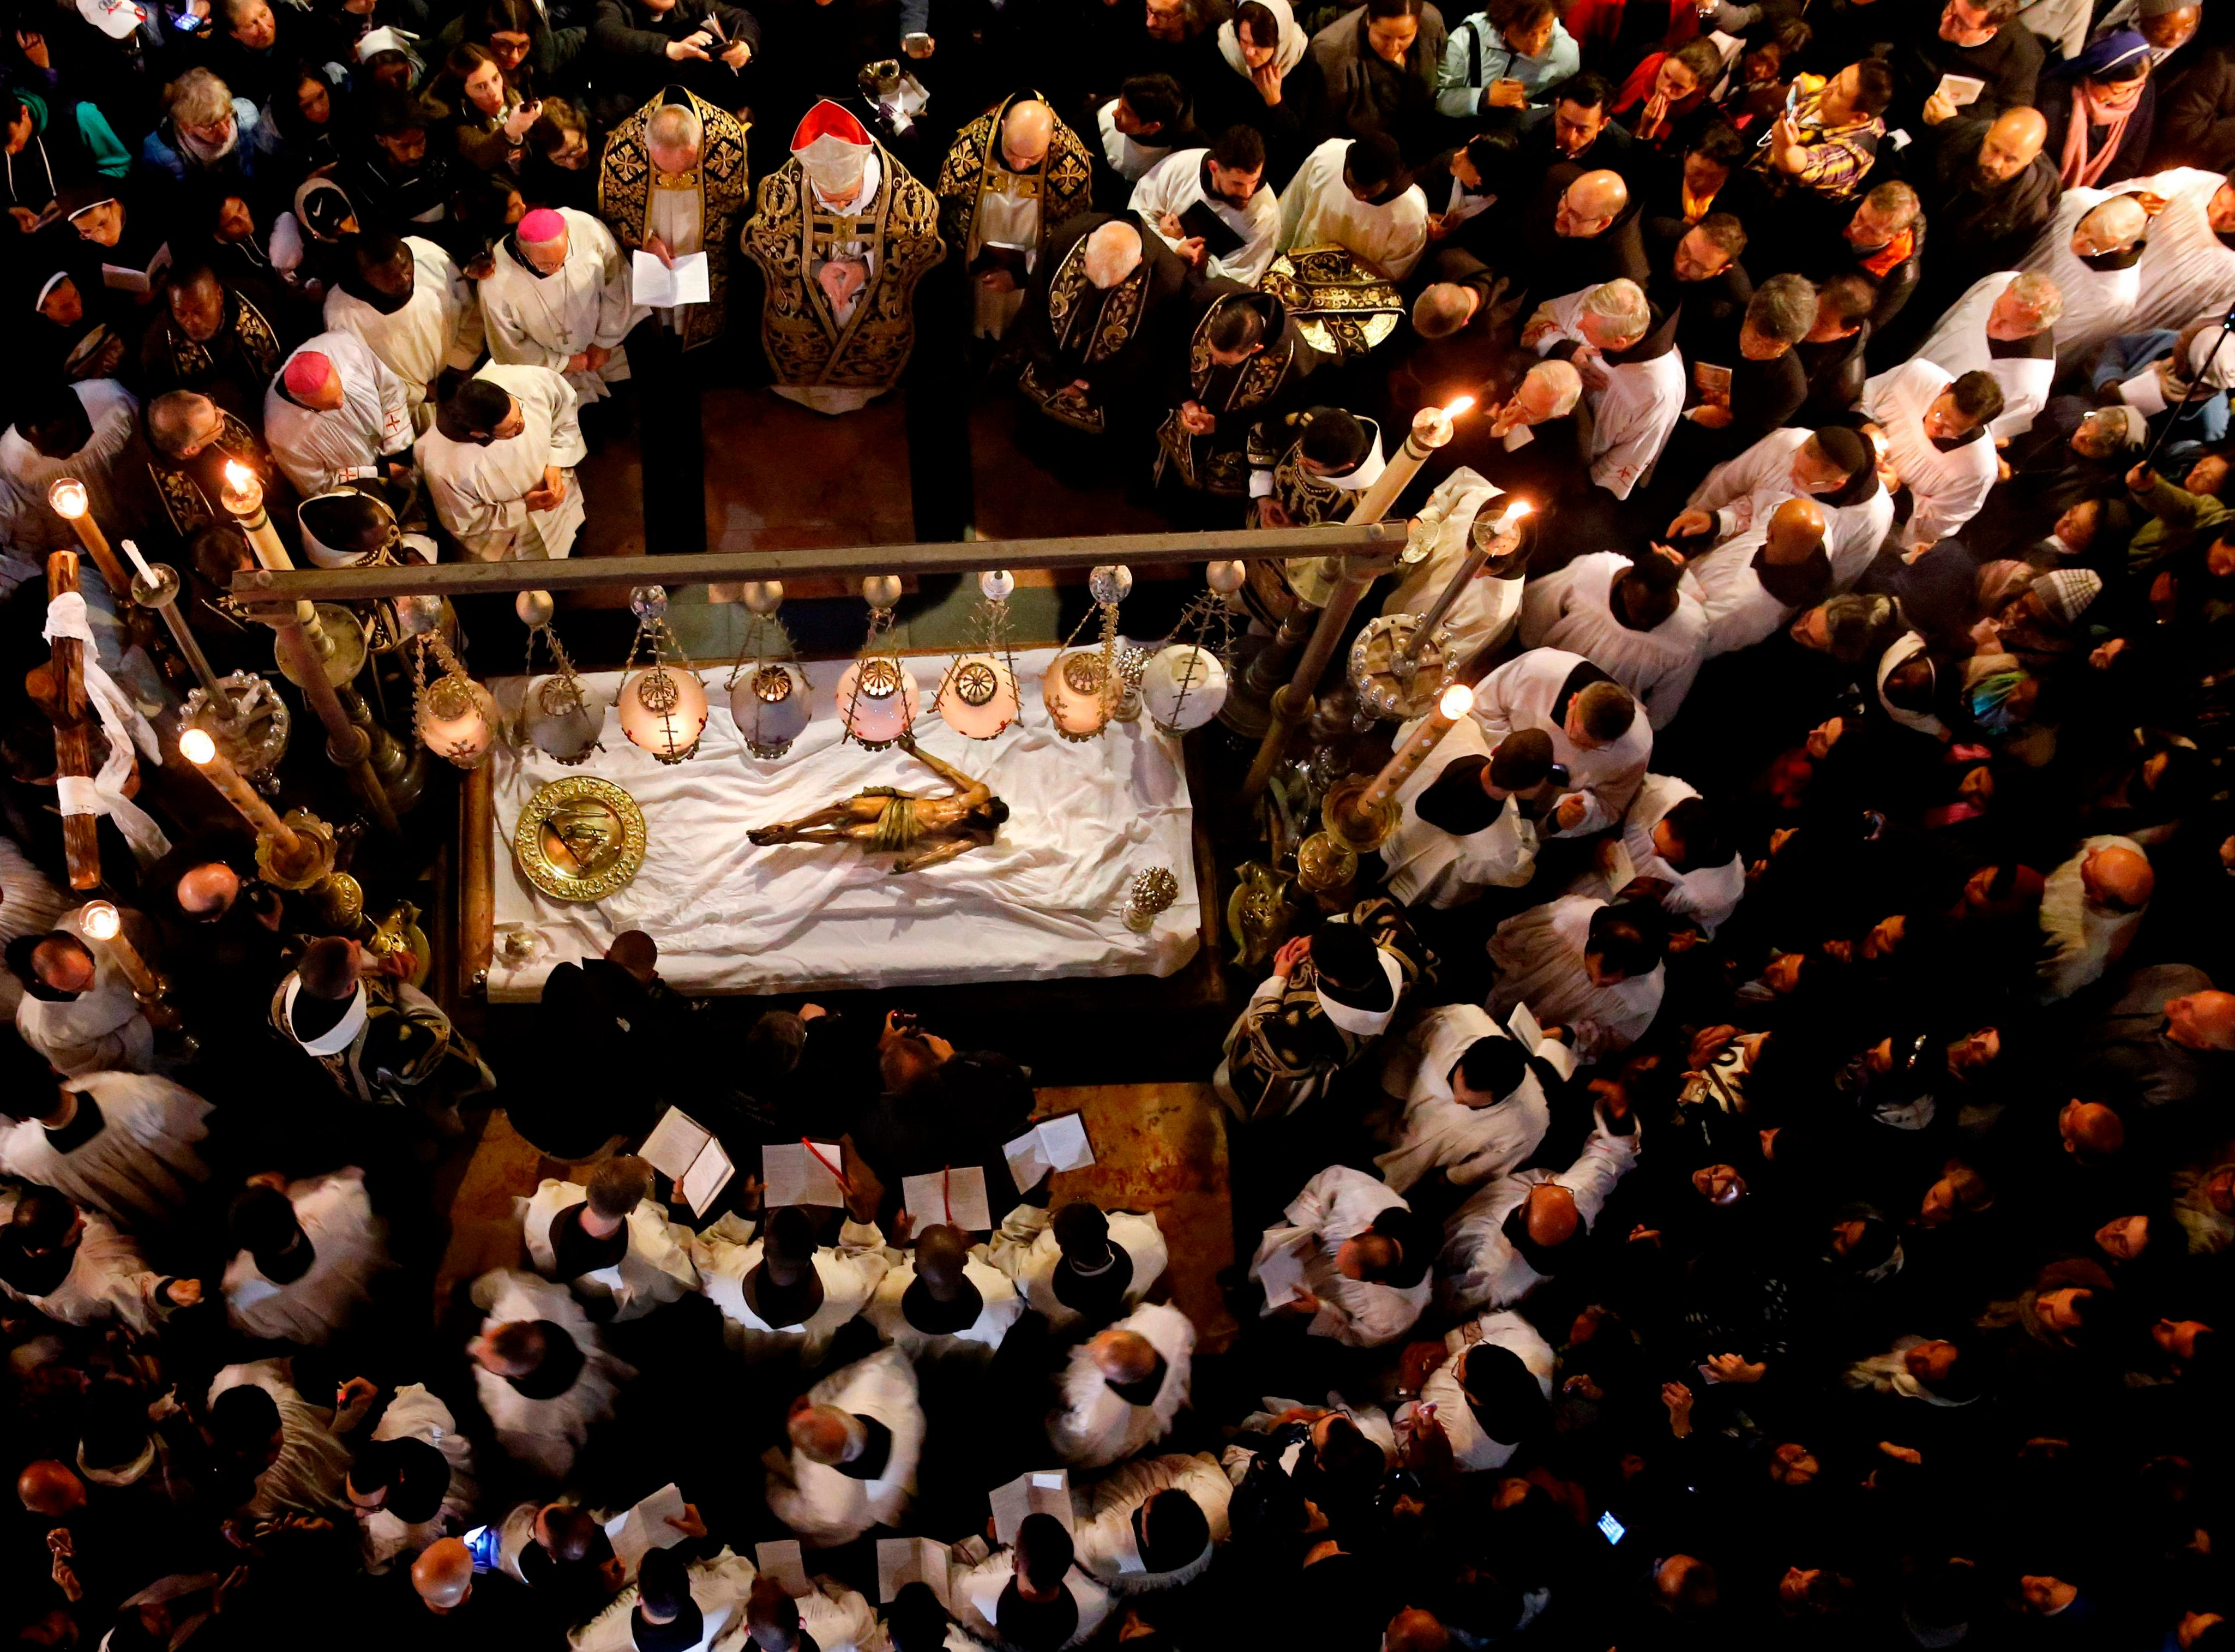 Franciscan friars pray over the statue of Jesus lying down on the Anointing Stone during a reenactment of the Funeral of Jesus inside the Church of the Holy Sepulchre during the Good Friday, in the Old City of Jerusalem, on April 19, 2019. Thousands of Christian pilgrims attend the funeral of Jesus where, according to the tradition, Jesus Christ was crucified, died and resurrected.